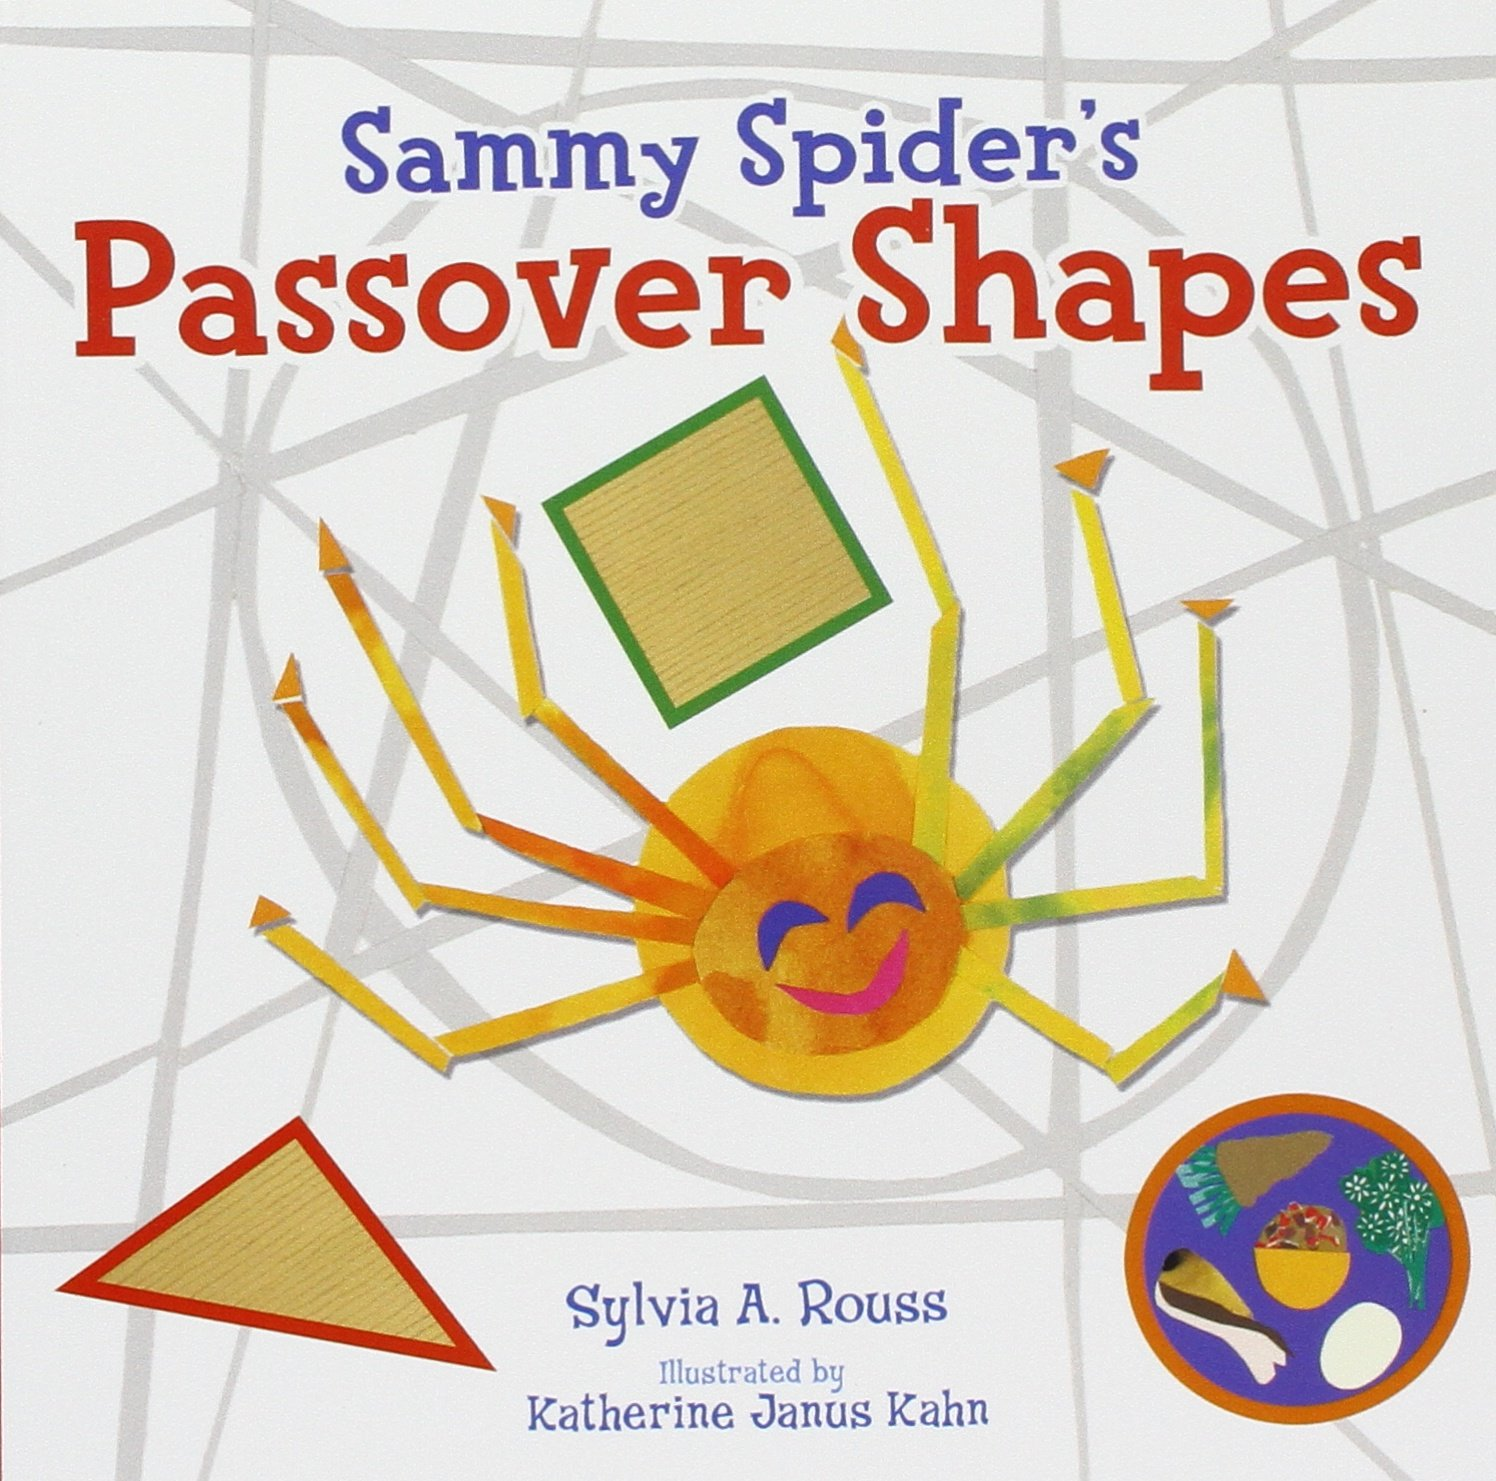 Sammy spiders passover shapes sylvia a rouss katherine janus sammy spiders passover shapes sylvia a rouss katherine janus kahn 9781467779708 amazon books fandeluxe Document